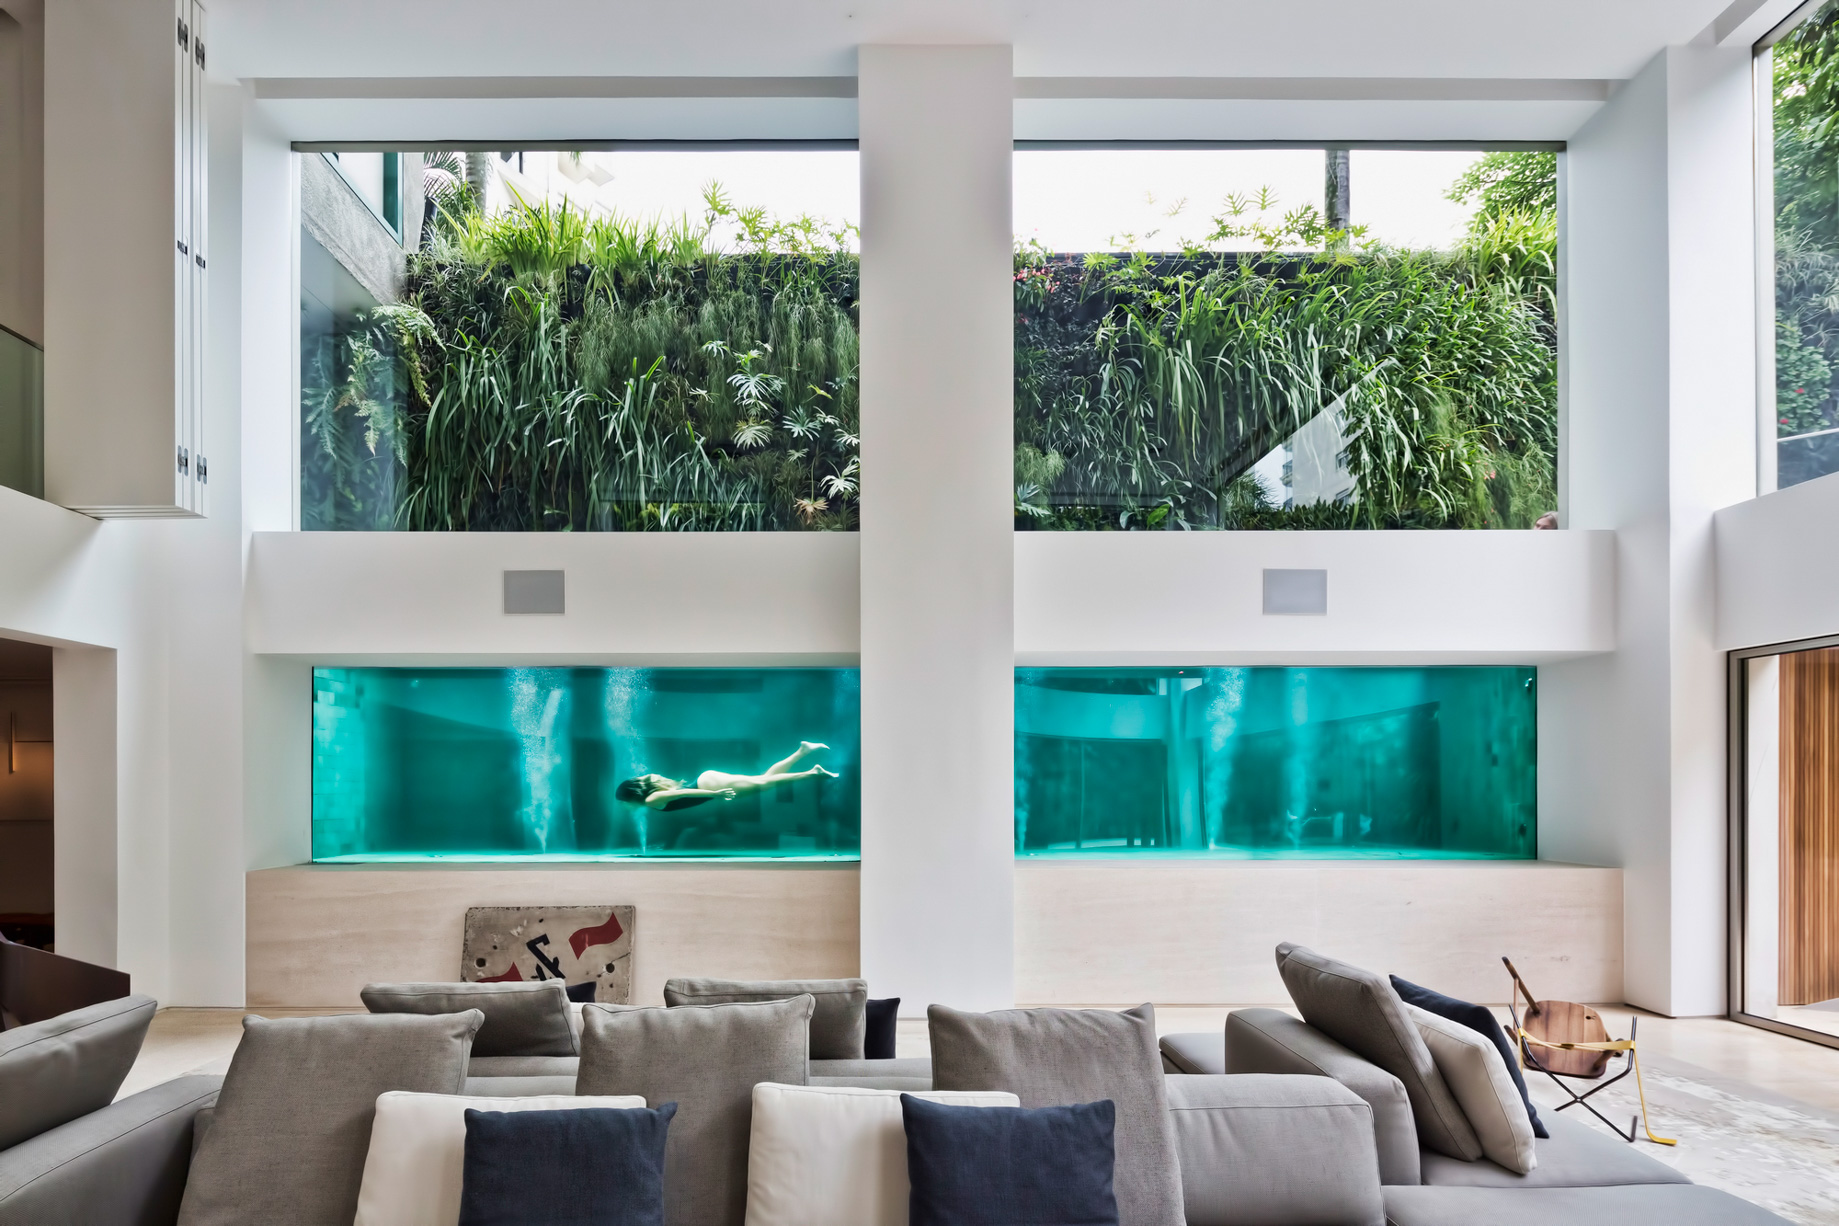 Panorama Swimming Pool House - Vila Nova Conceicao, Sao Paulo, Brazil